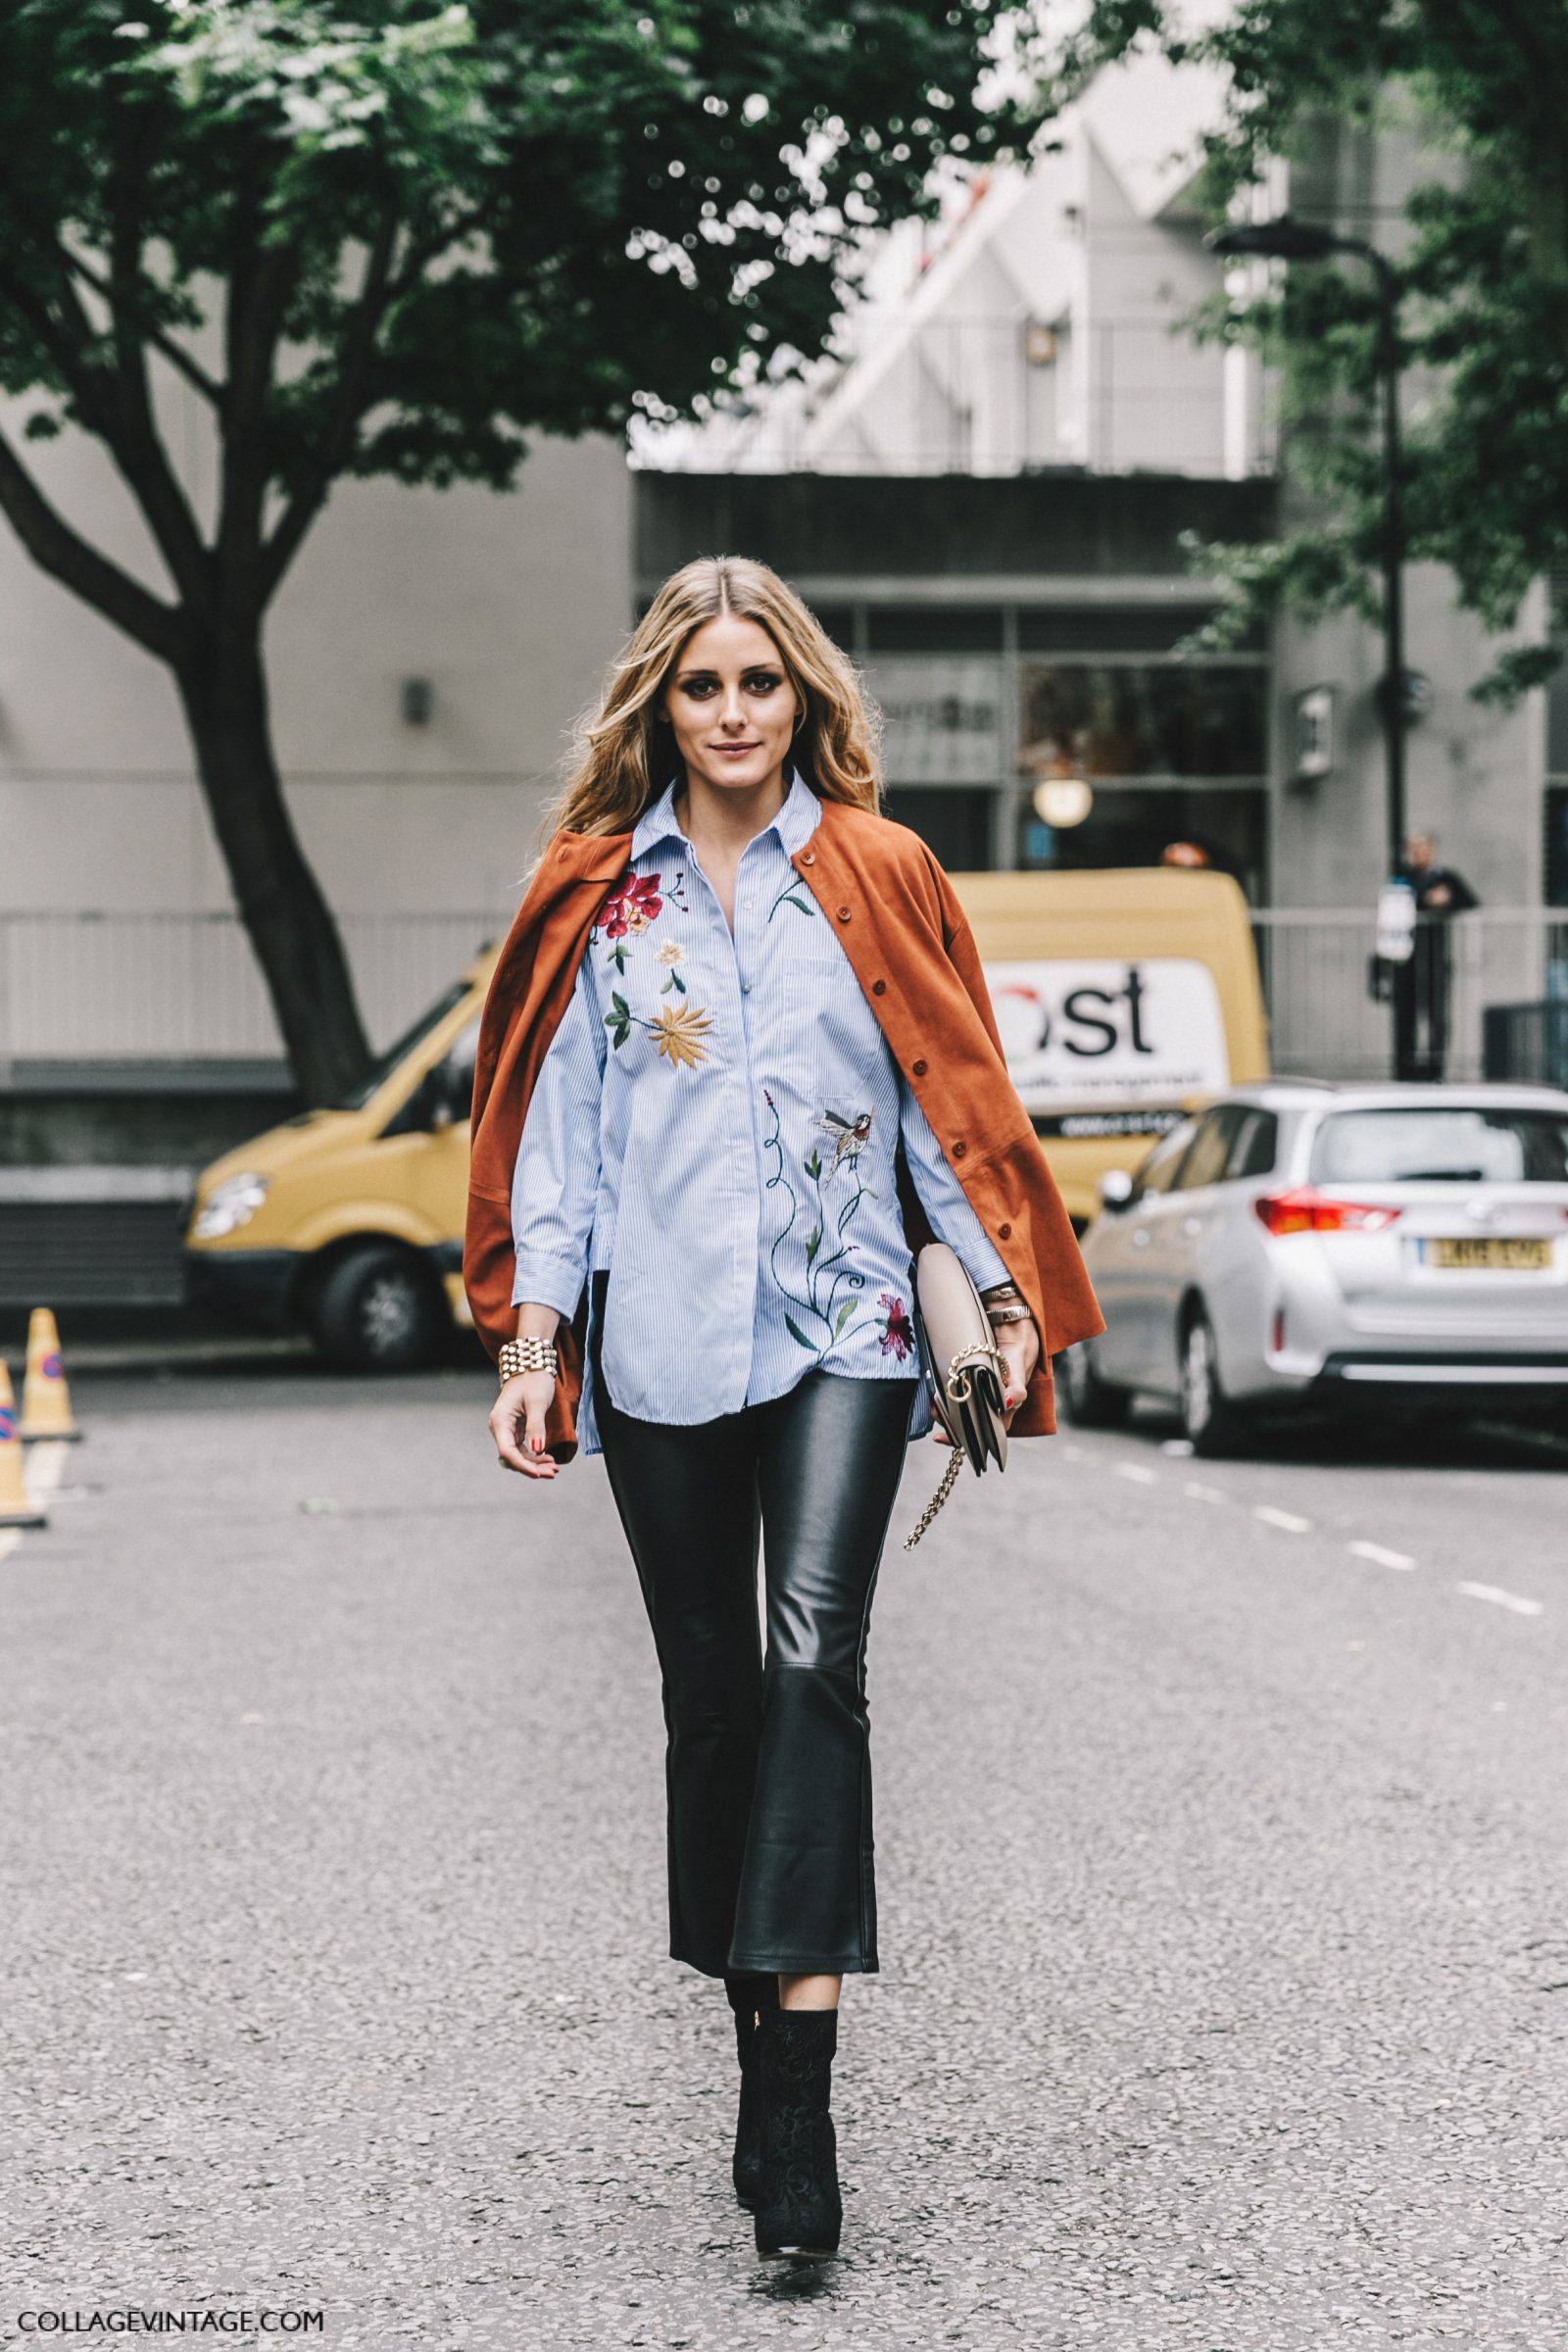 lfw-london_fashion_week_ss17-street_style-outfits-collage_vintage-vintage-jw_anderson-house_of_holland-108